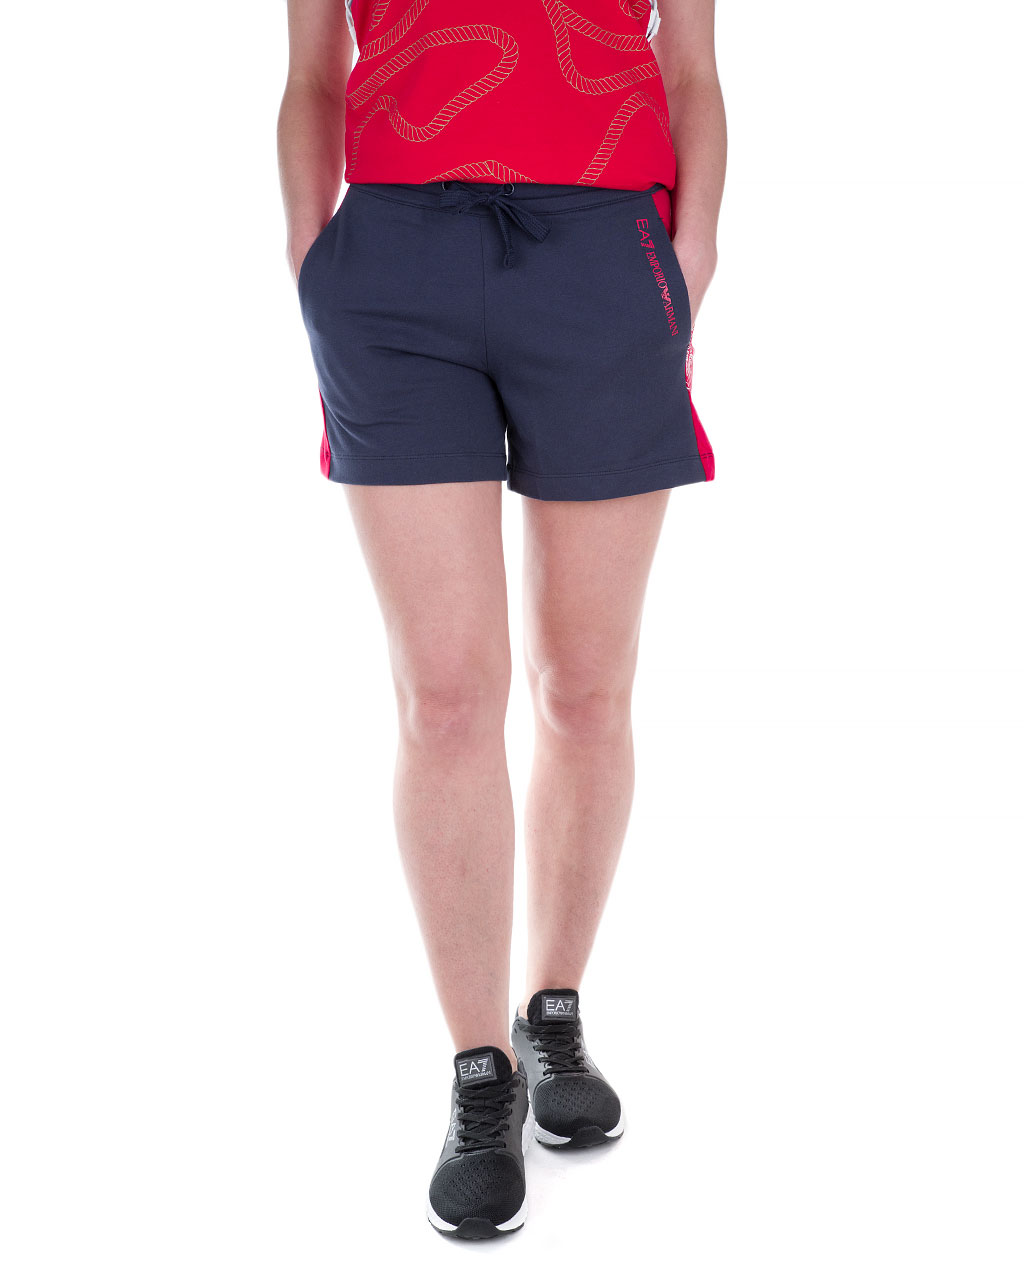 Women's sports shorts 3GTS55-TN31Z-1554/91 (4)